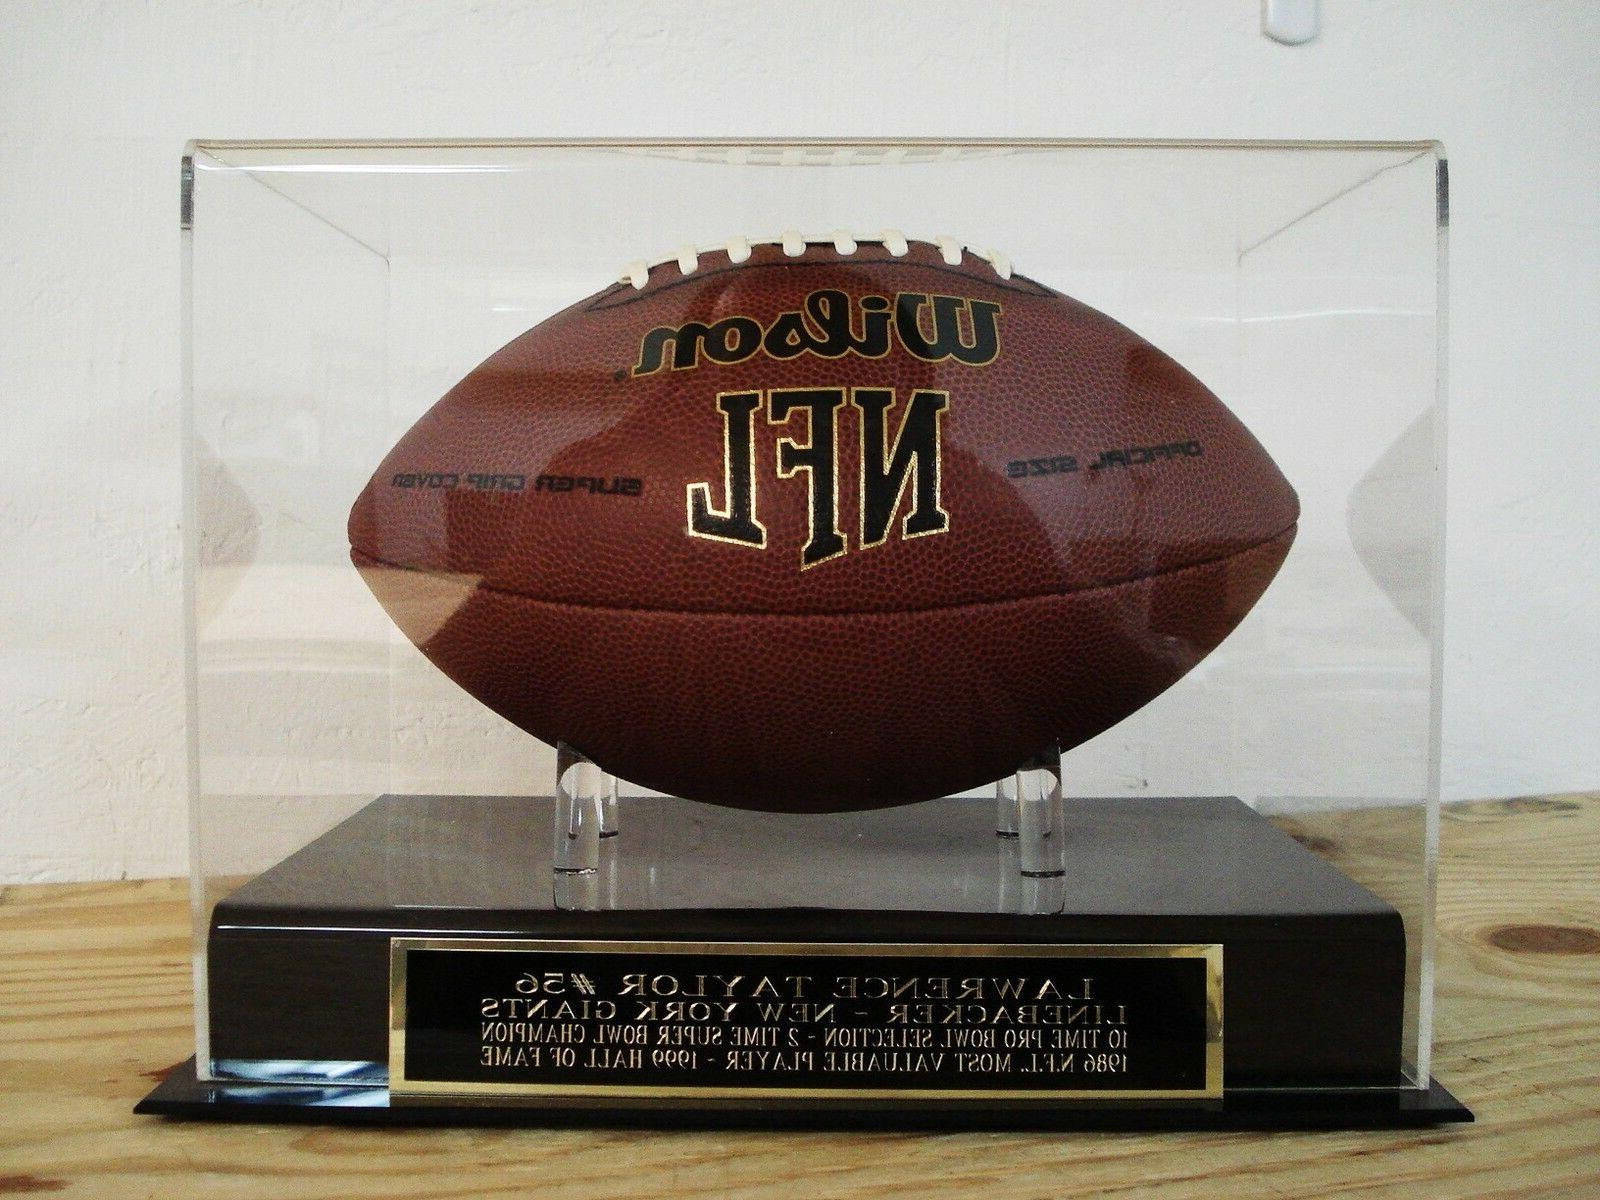 display case for your lawrence taylor new